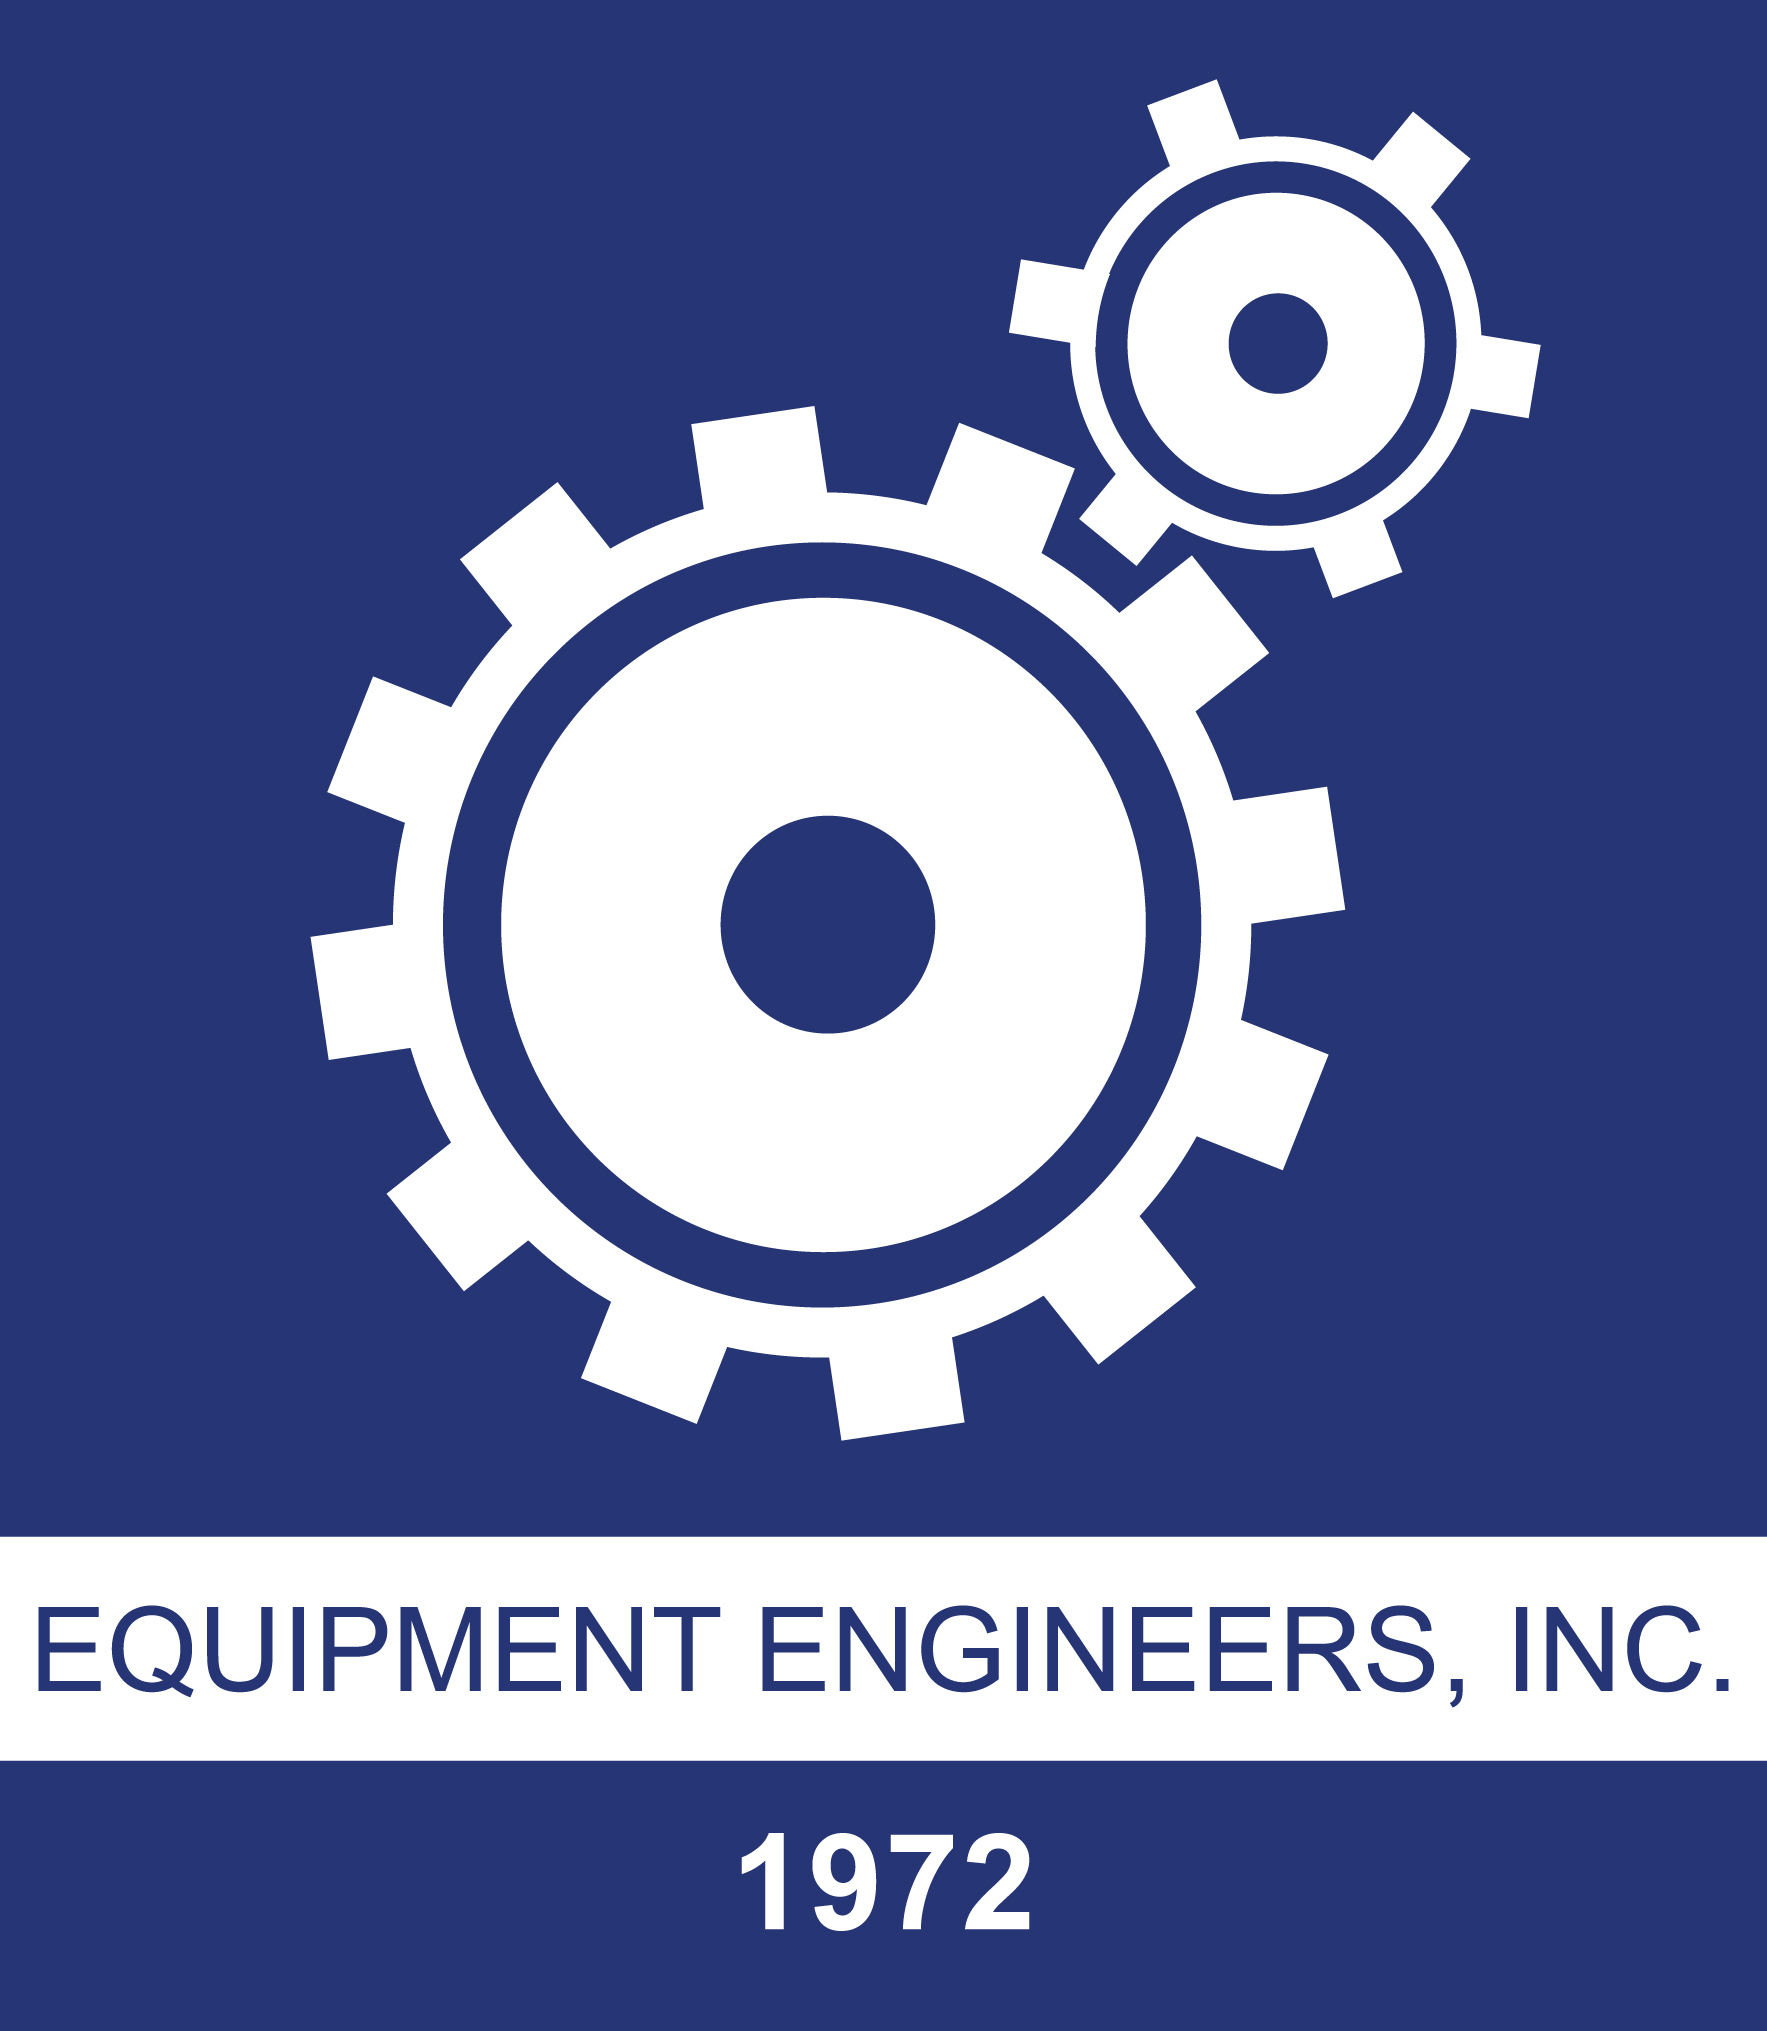 Equipment Engineers, Inc.